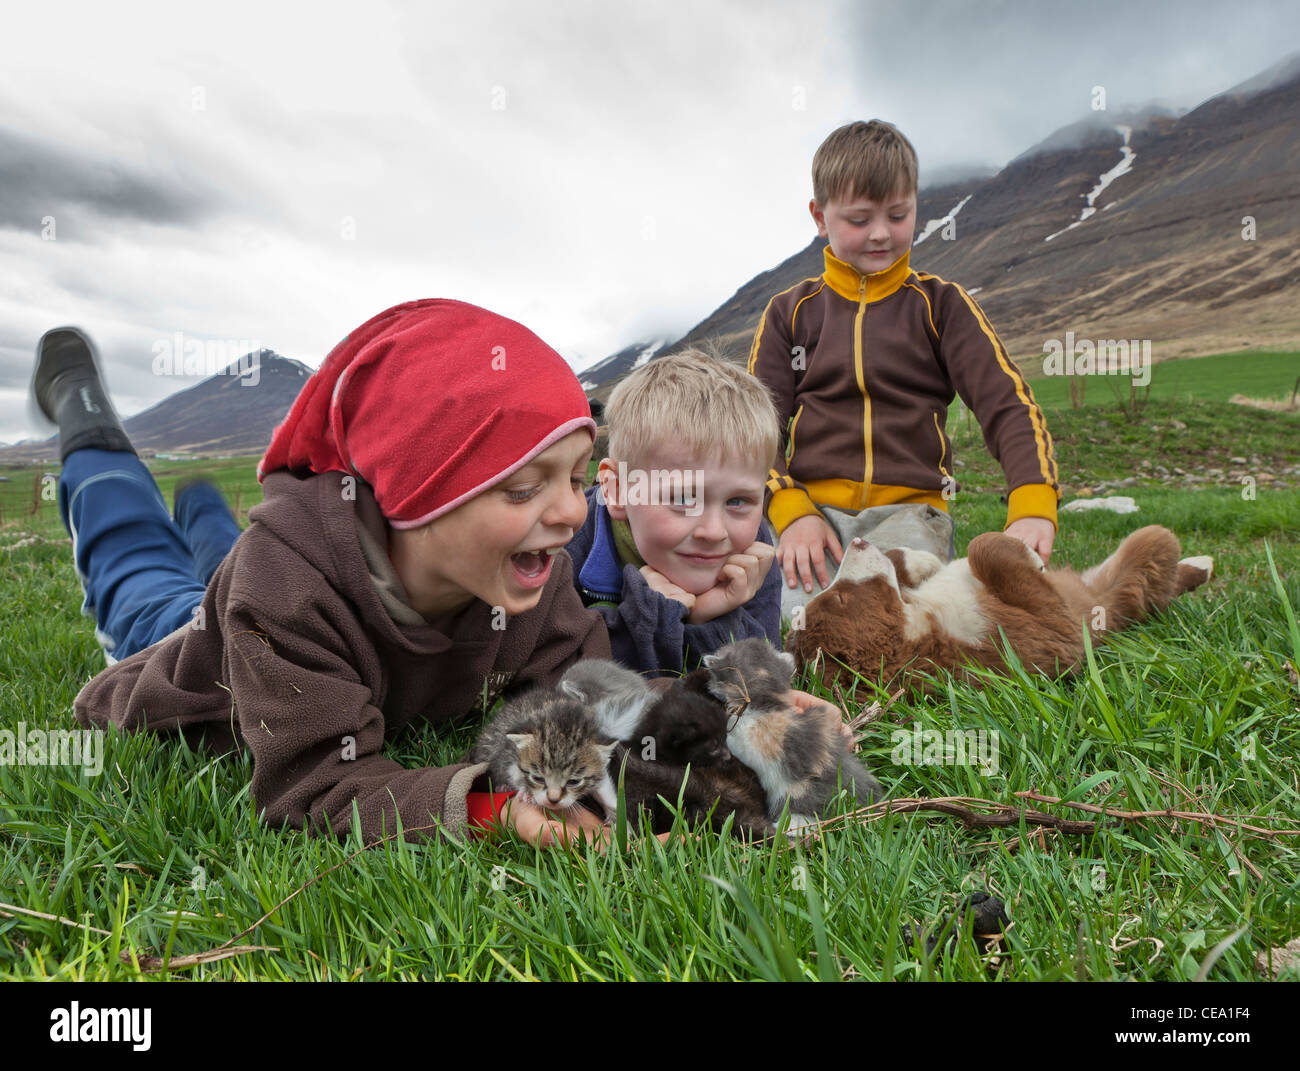 Boys with kittens and puppy on farm in Northern Iceland - Stock Image